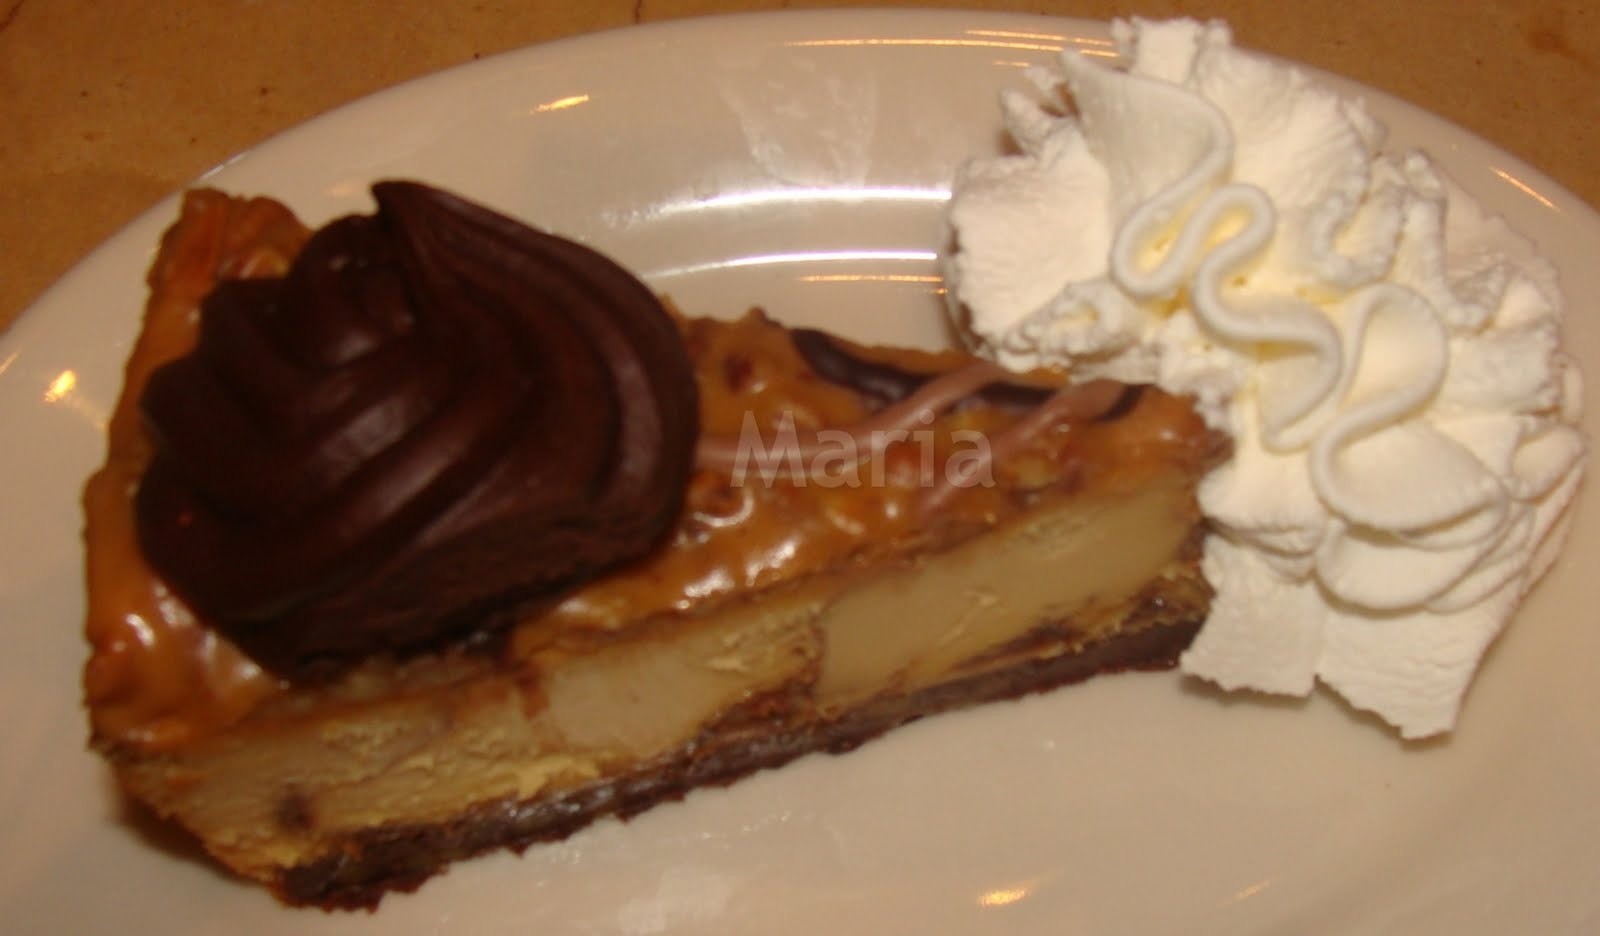 Food and Beverage Stop: Caramel Pecan Turtle Cheesecake